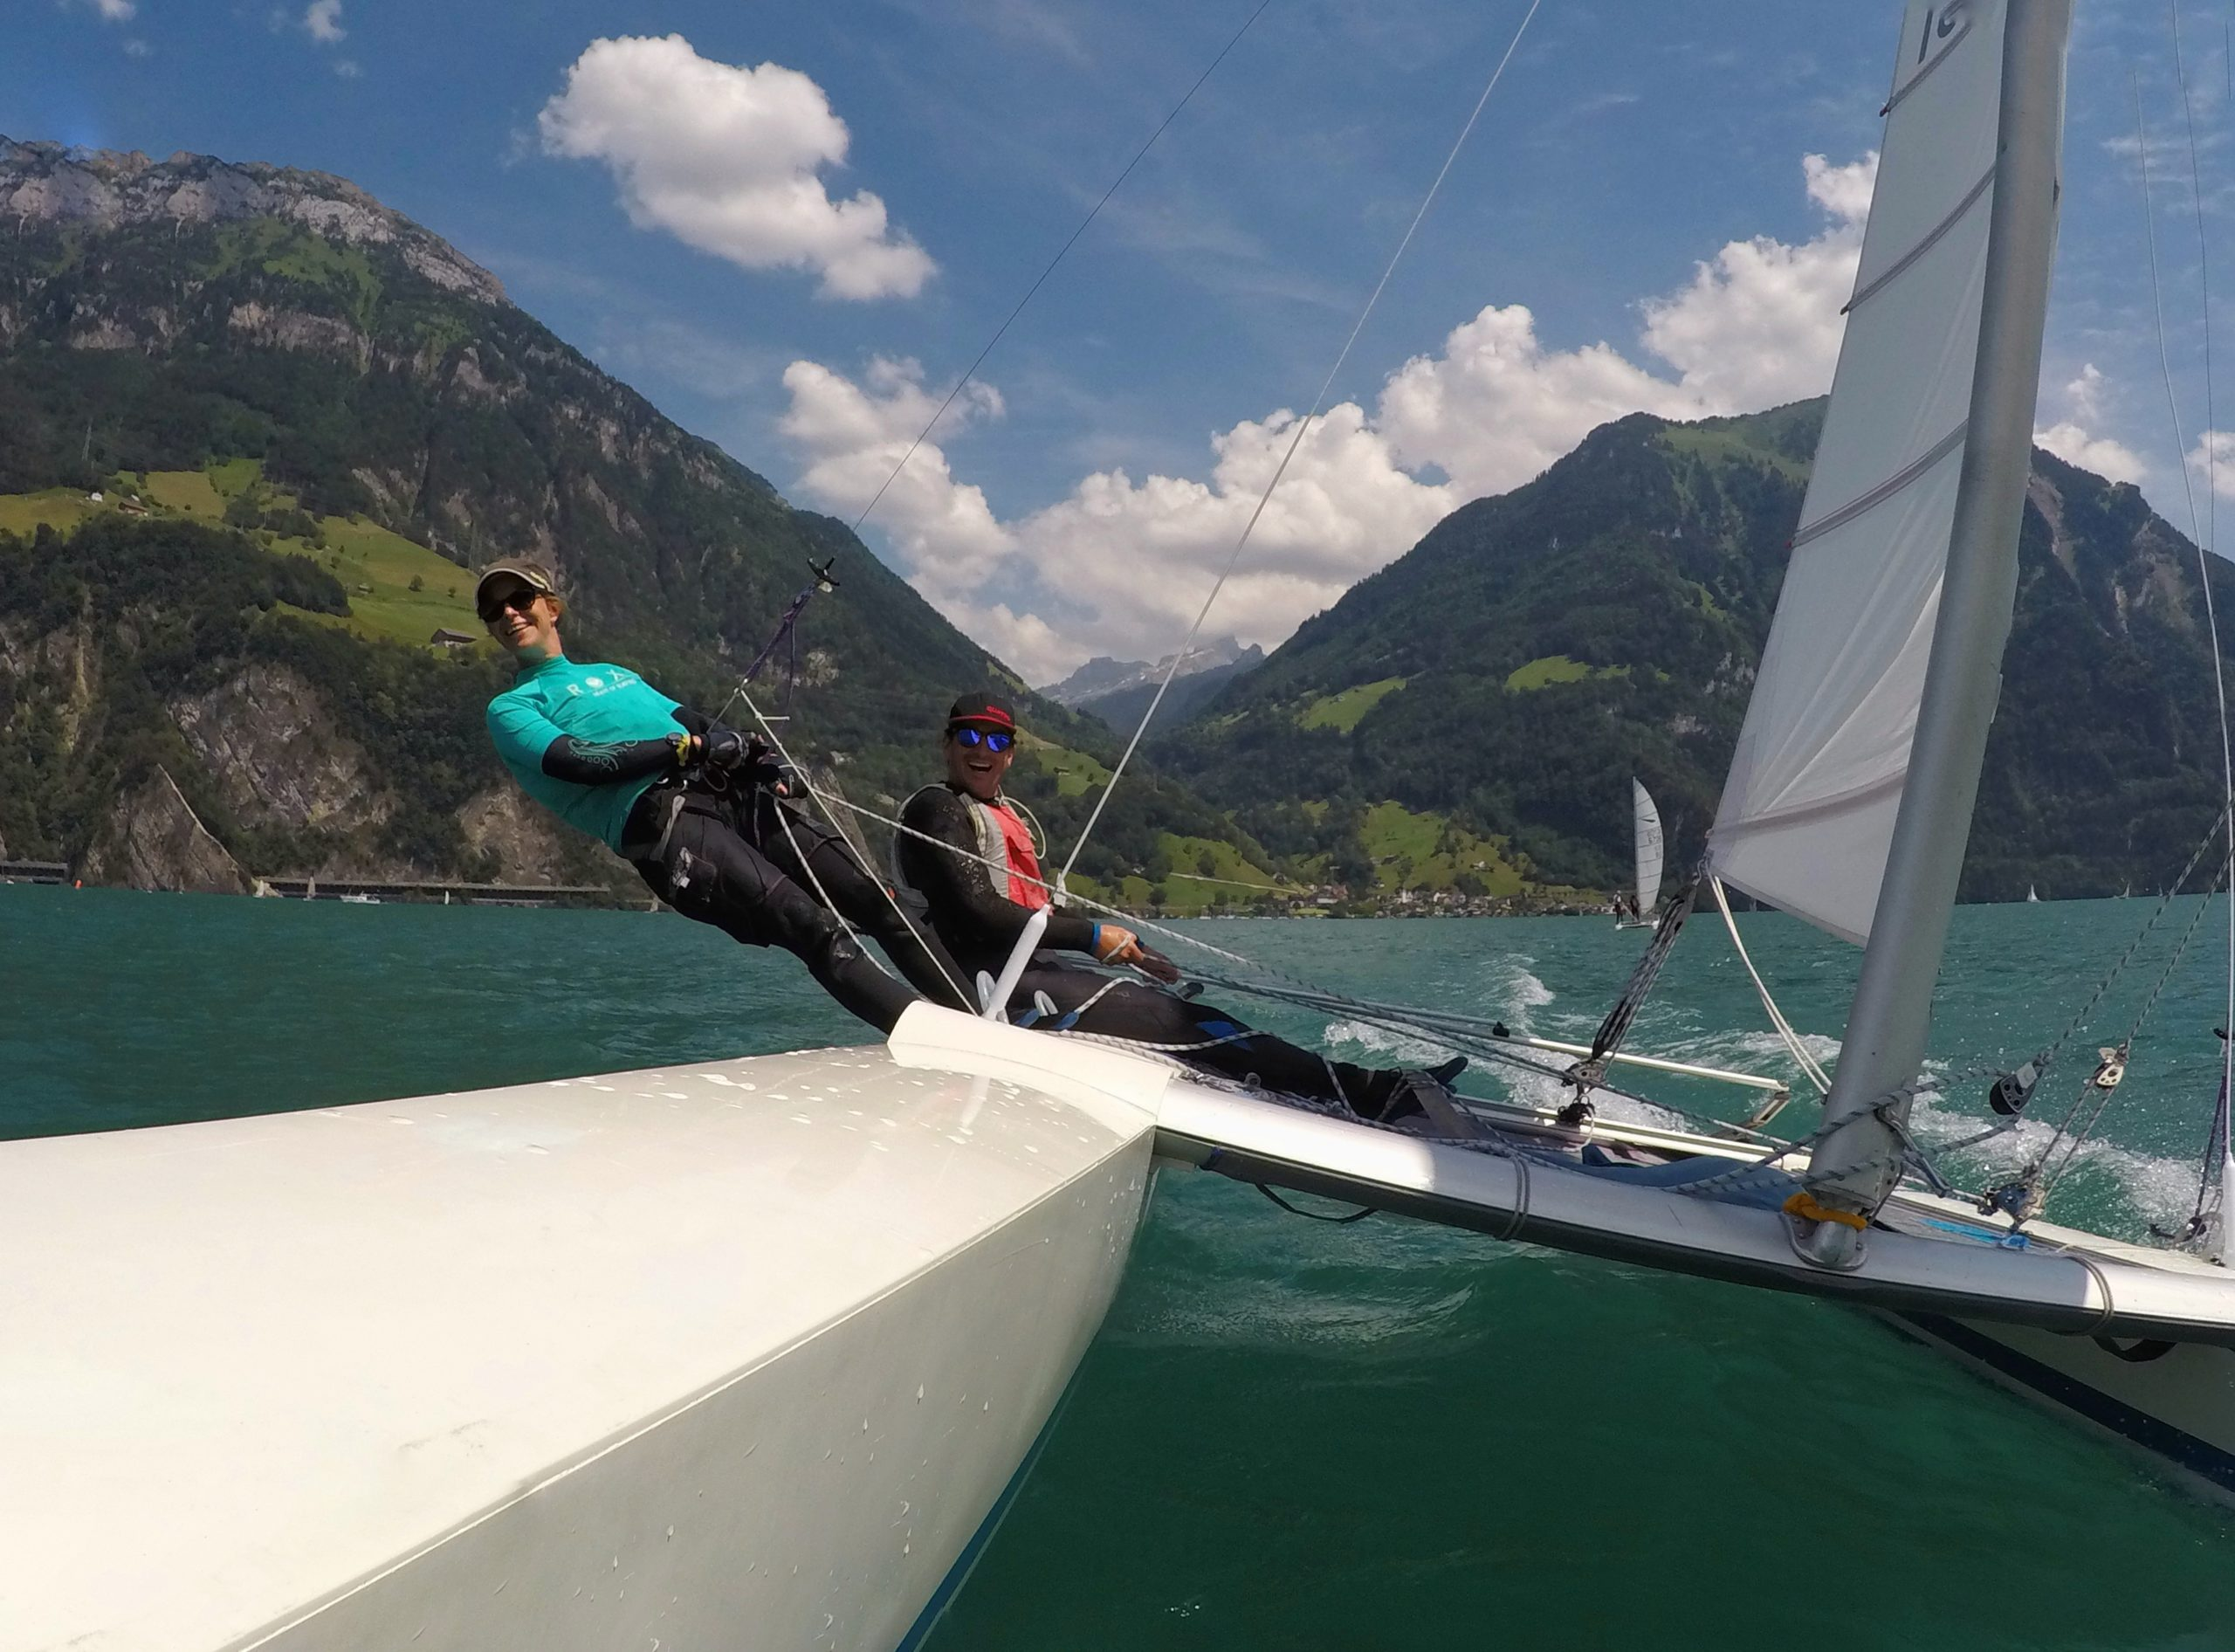 Wannabe Watersports - Watersports in & around Switzerland. Passionate about Sailing, Windsurfing, Stand Up Paddle (SUP) or anything that get's us wet.